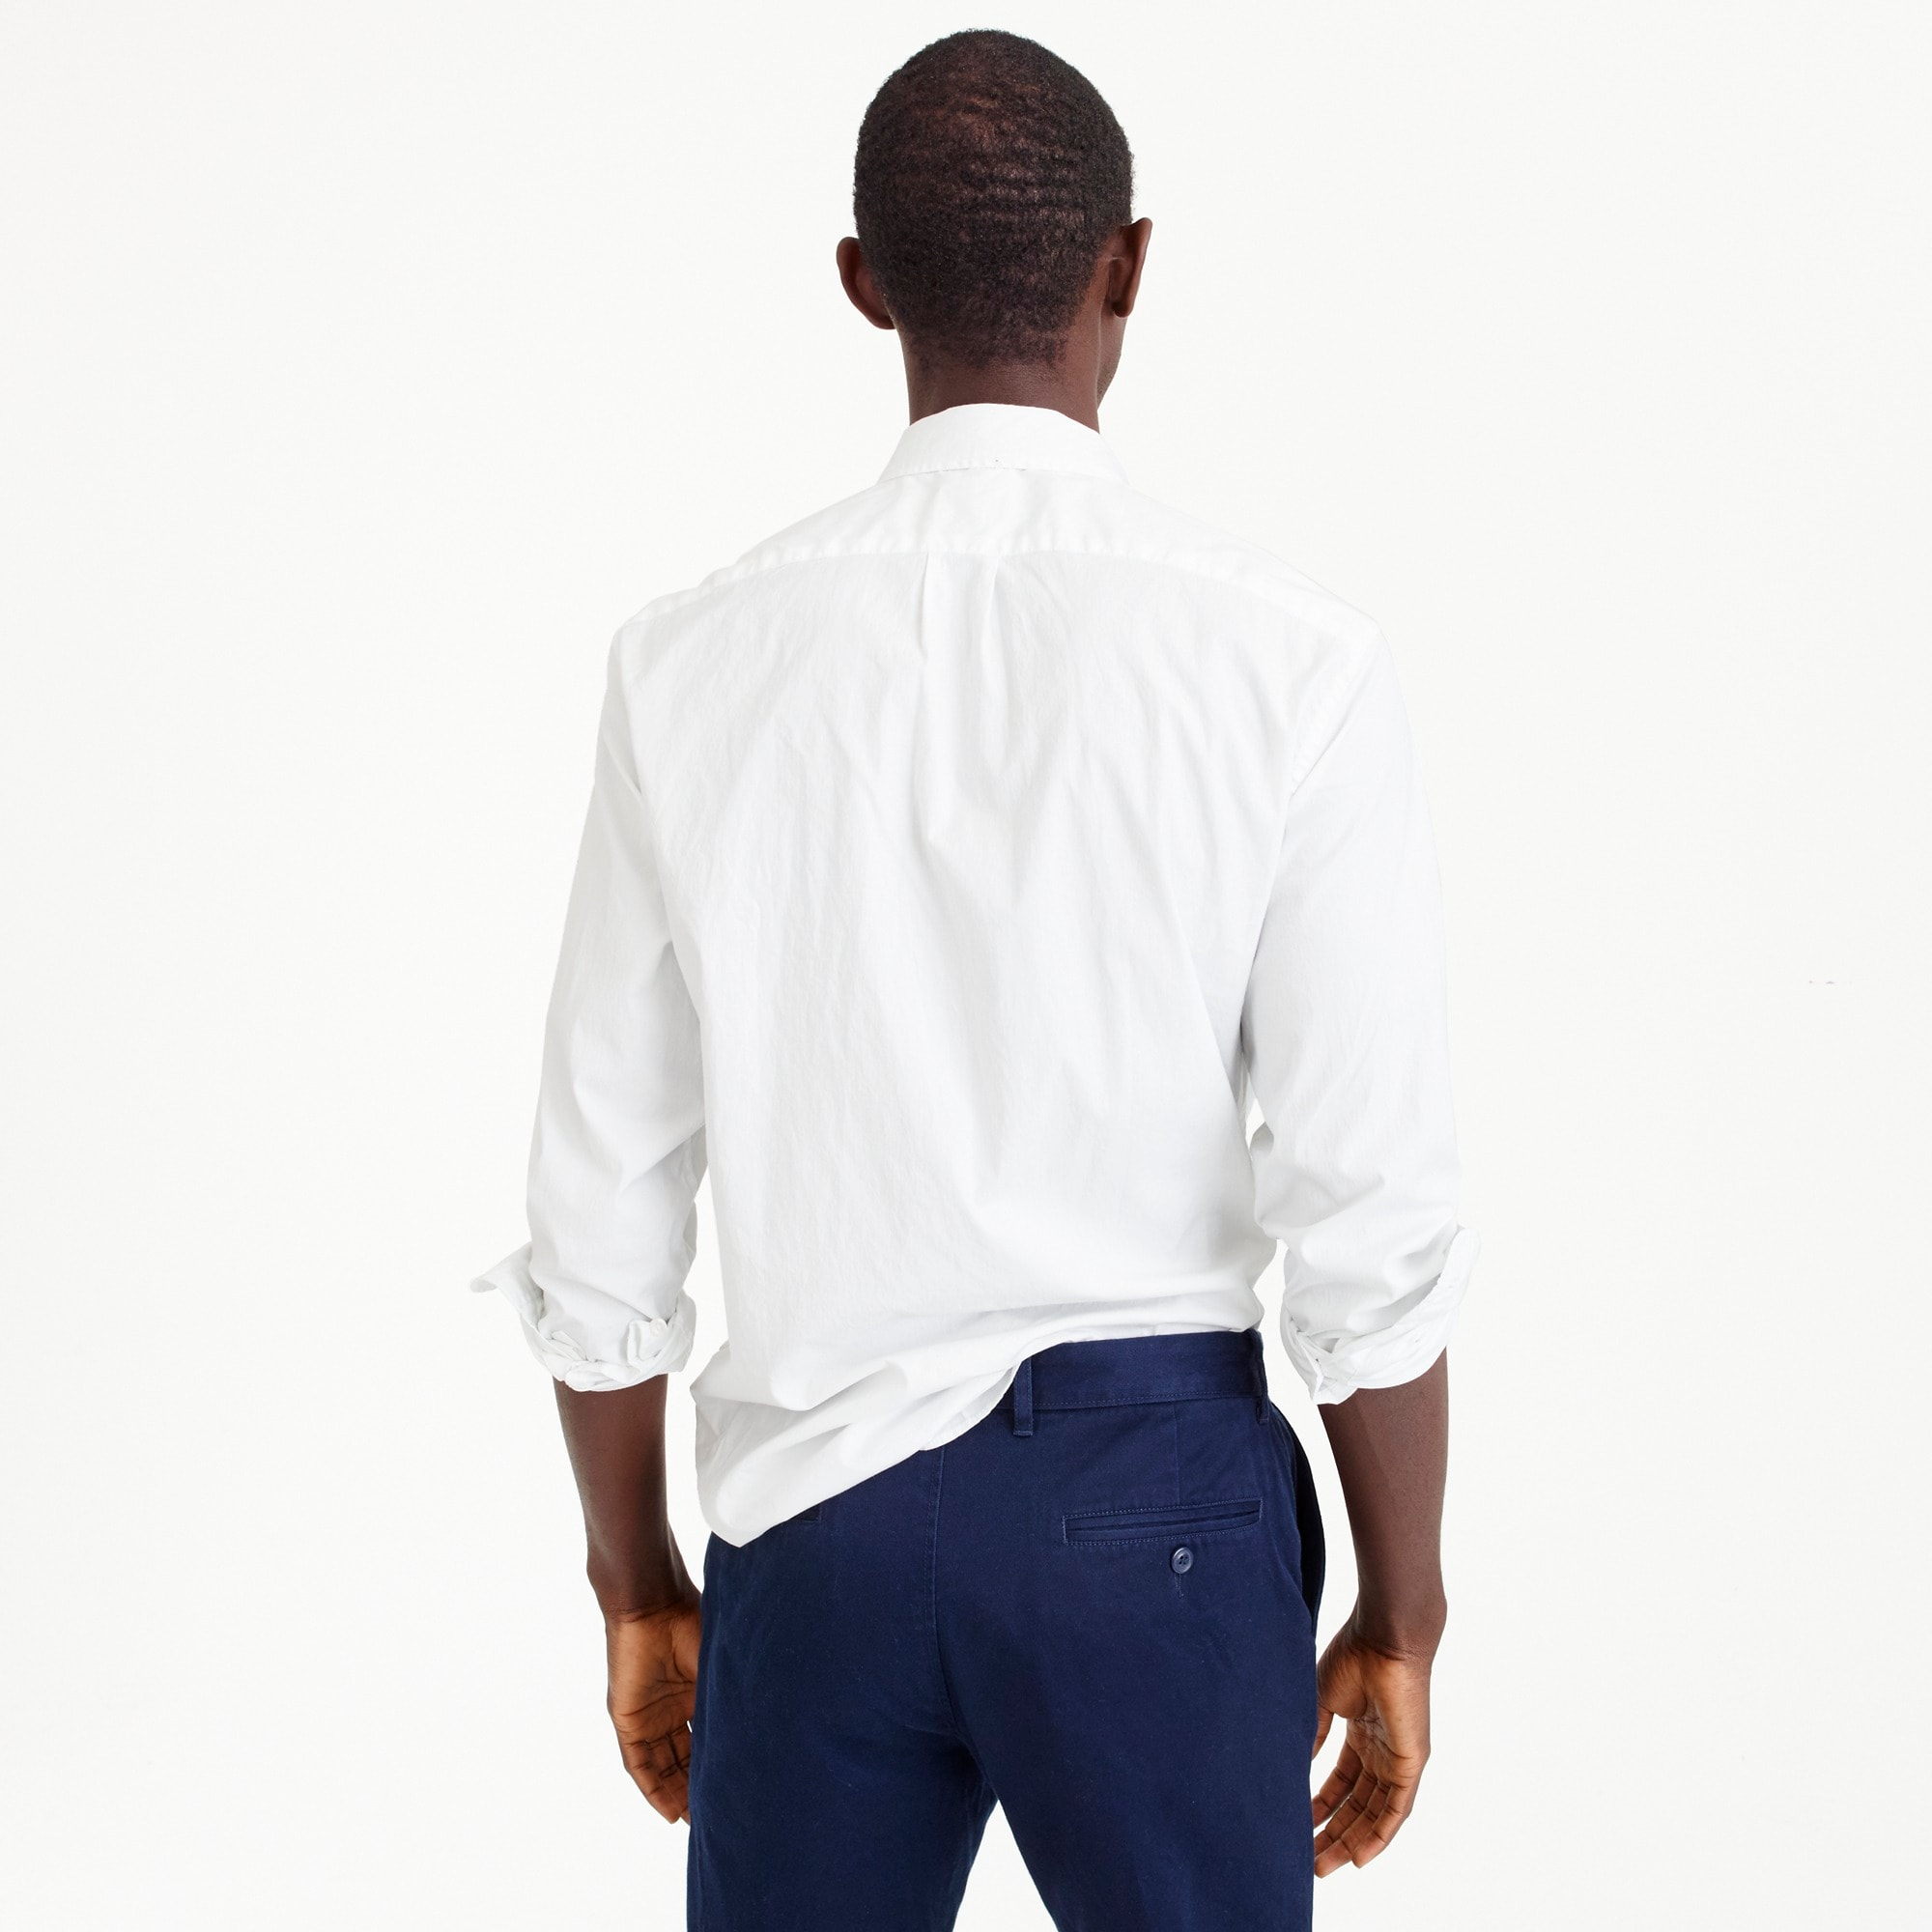 Image 3 for Slim stretch Secret Wash shirt in white poplin